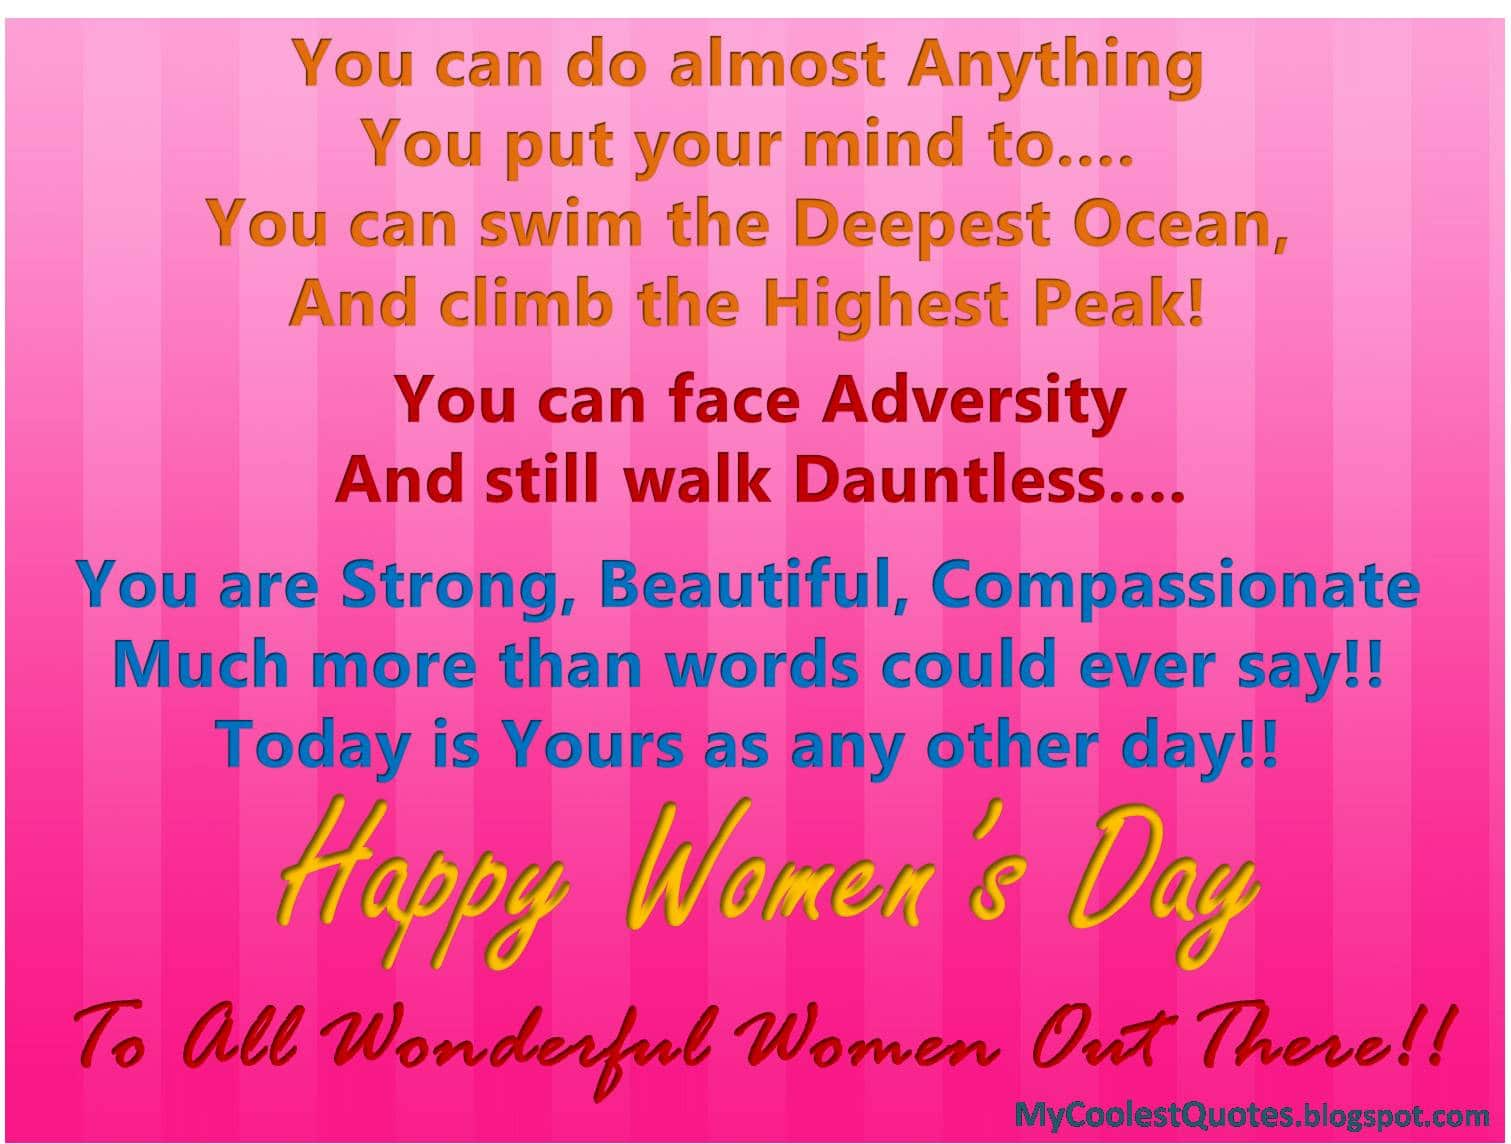 Women's Day Cute saying and lines